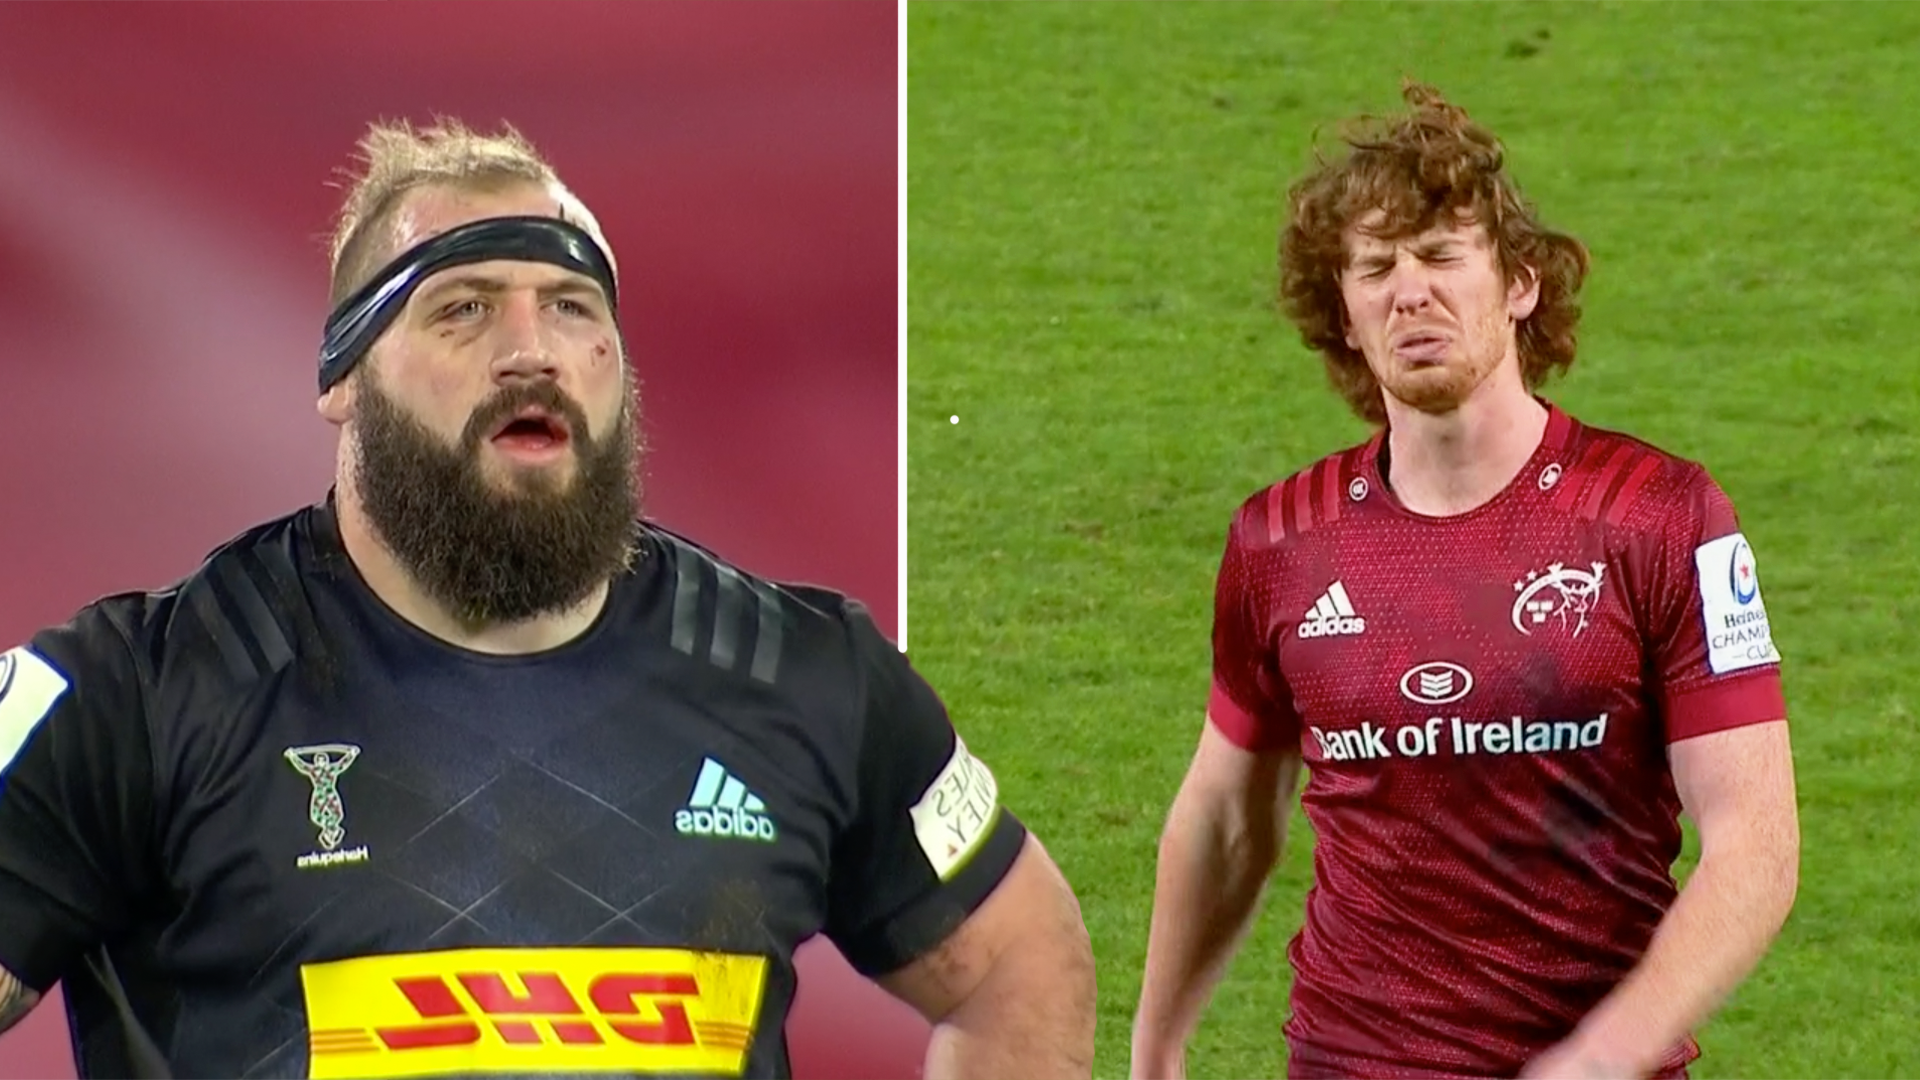 Fans disgust as Quins target and injure Munster star Ben Healy in shocking Challenge Cup scenes